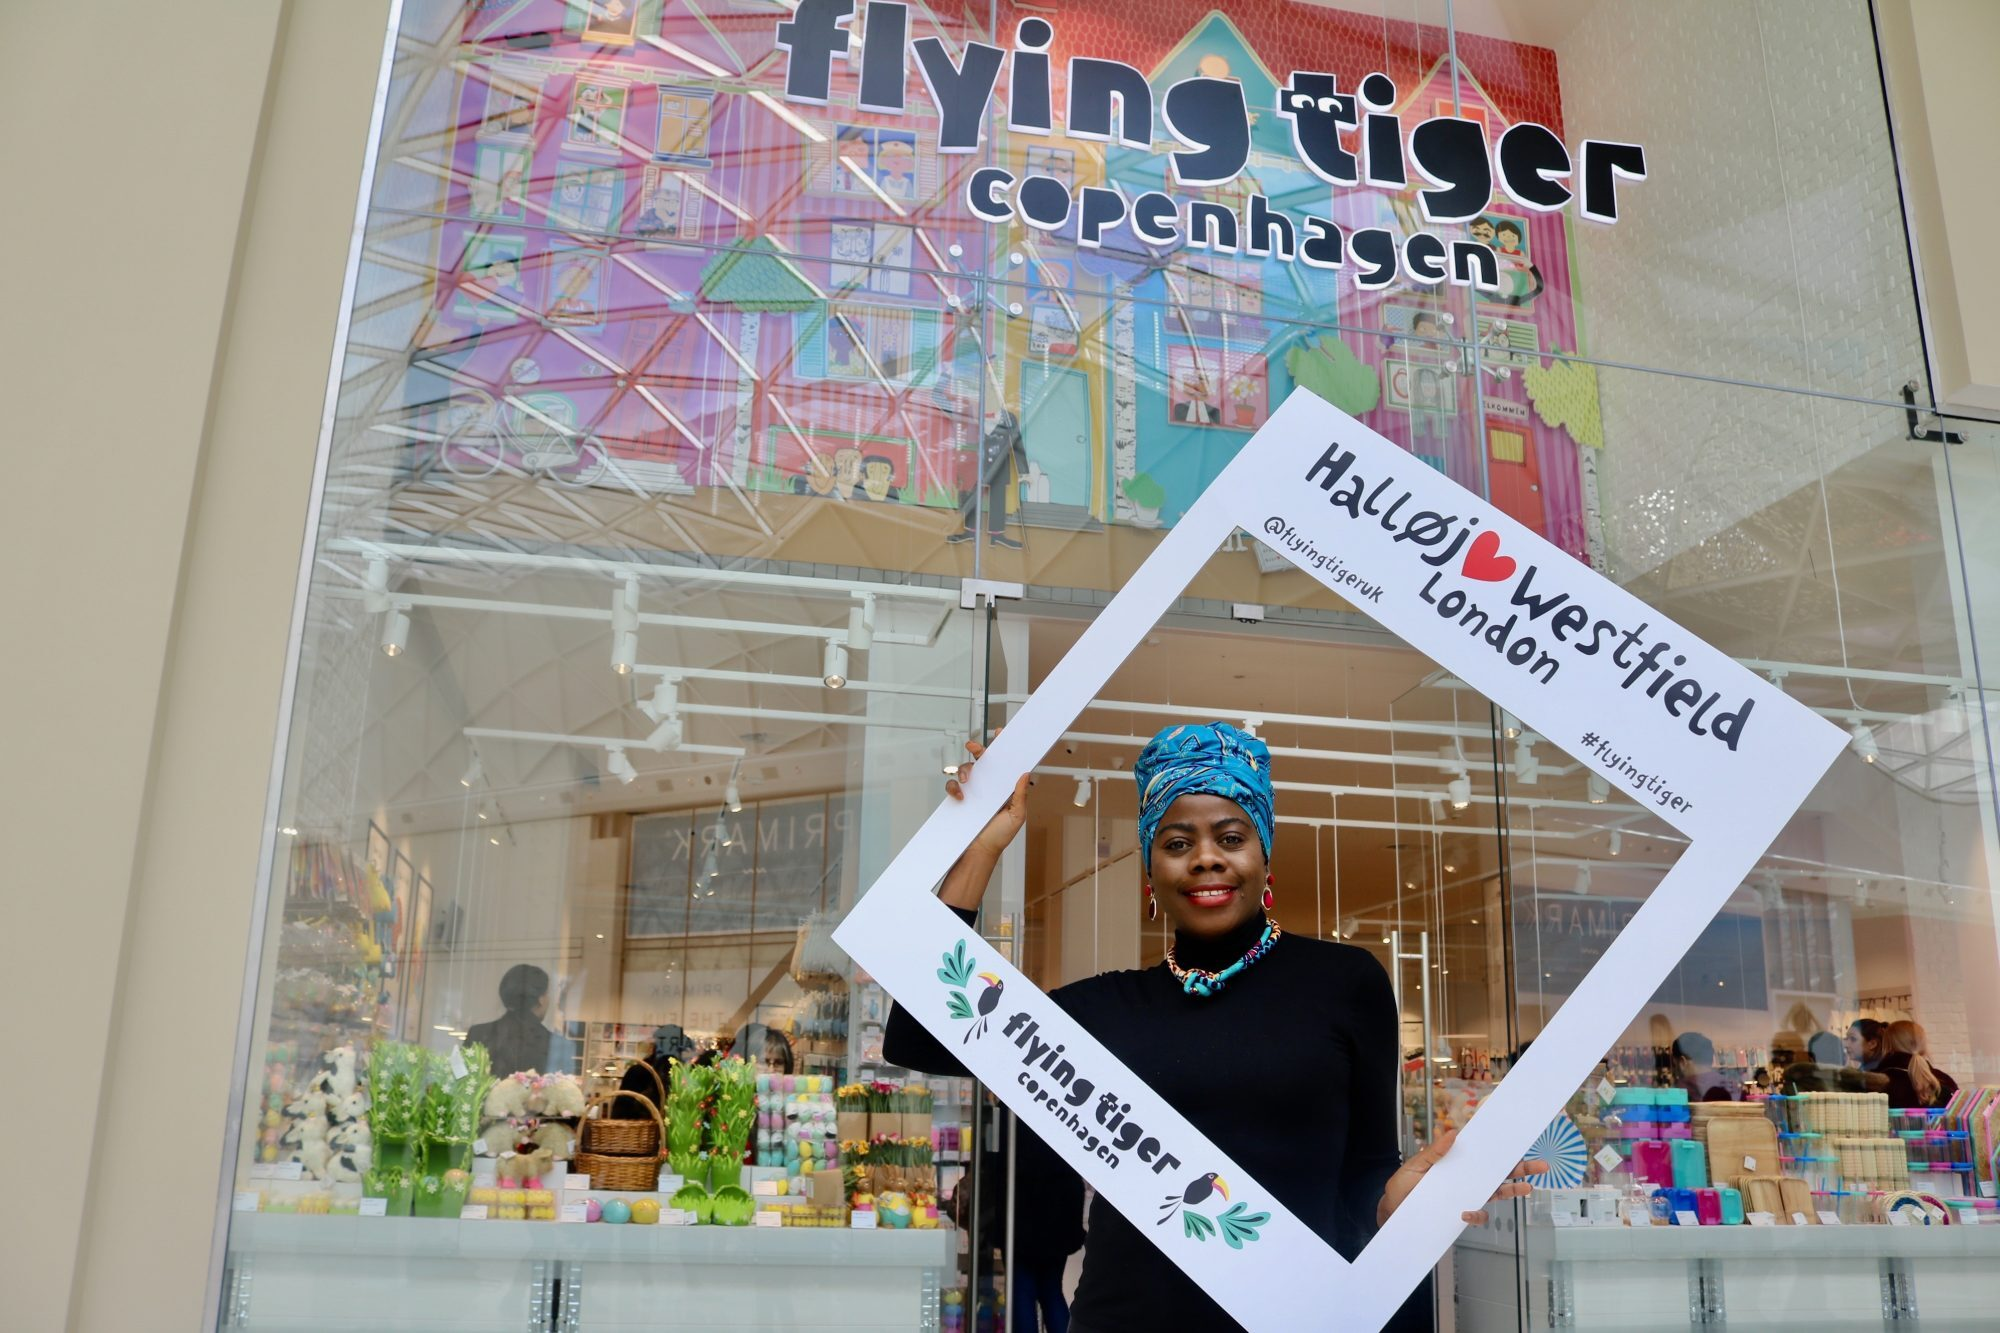 Flying Tiger Opens In W12 Shopping Center